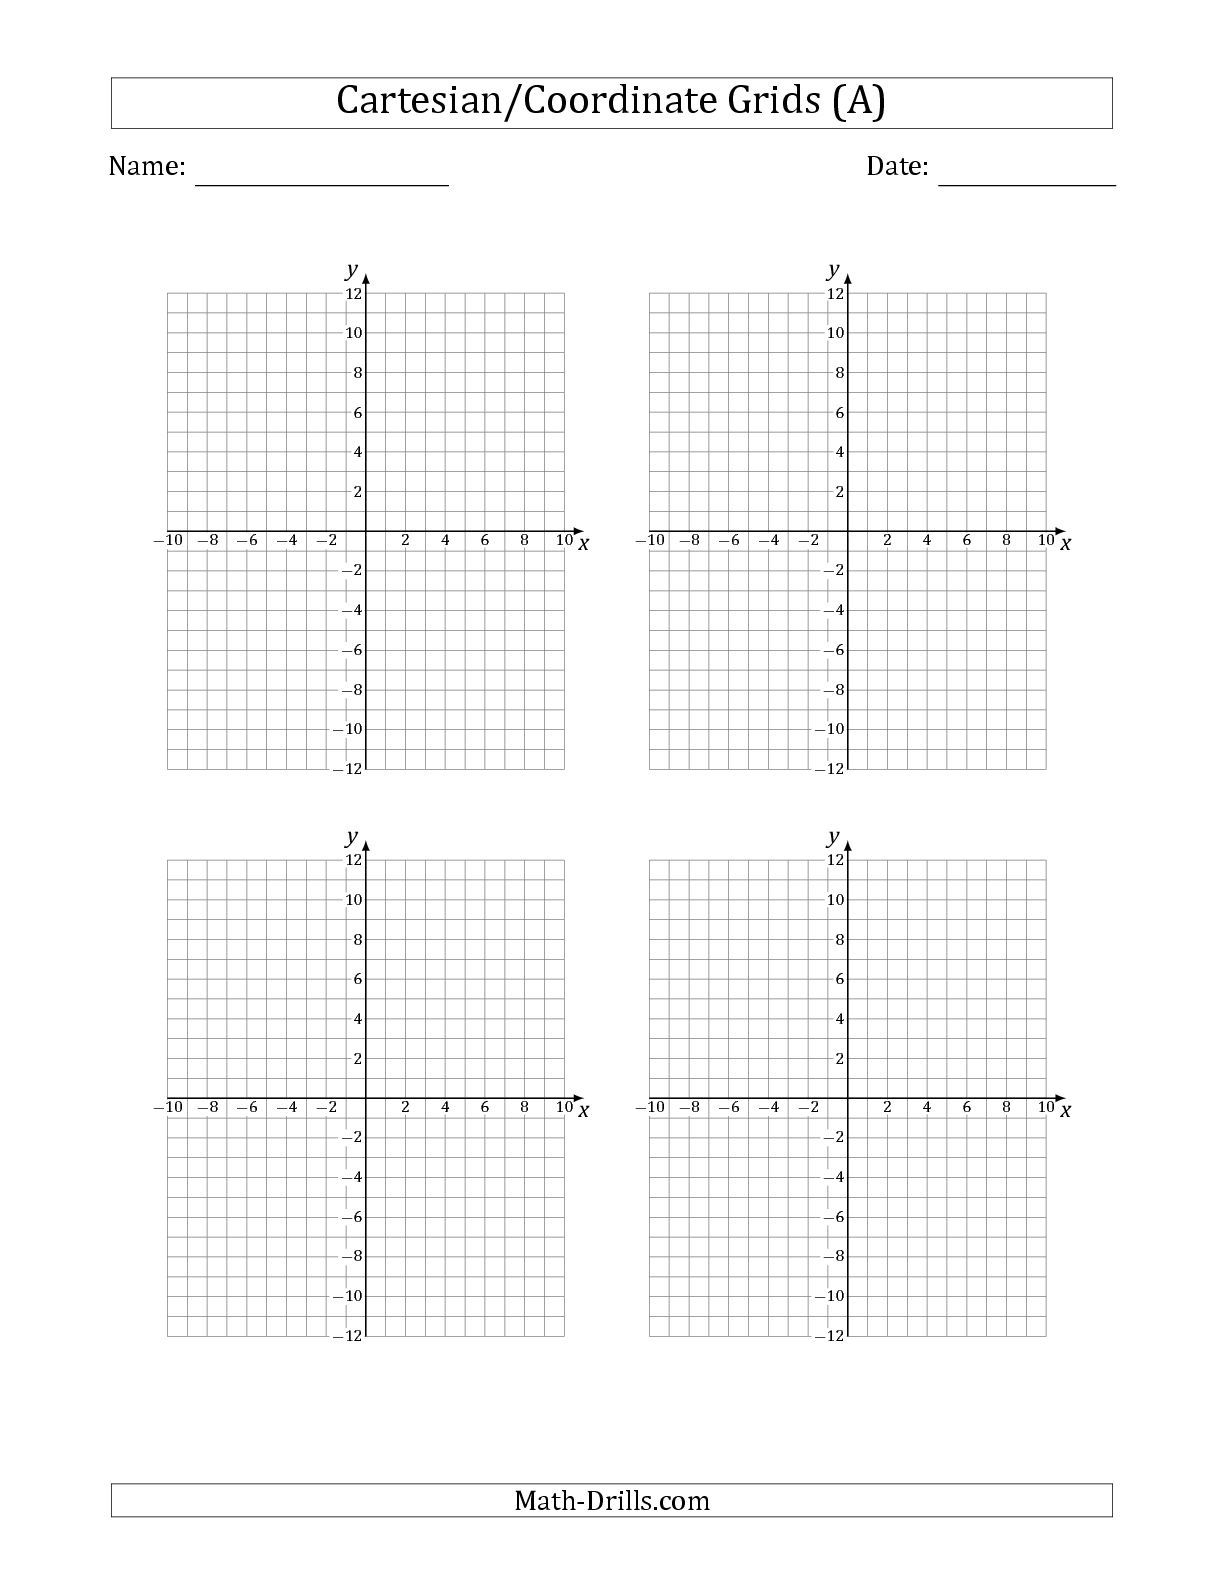 The 4 Per Page Cartesian/Coordinate Grids math worksheet from the ...